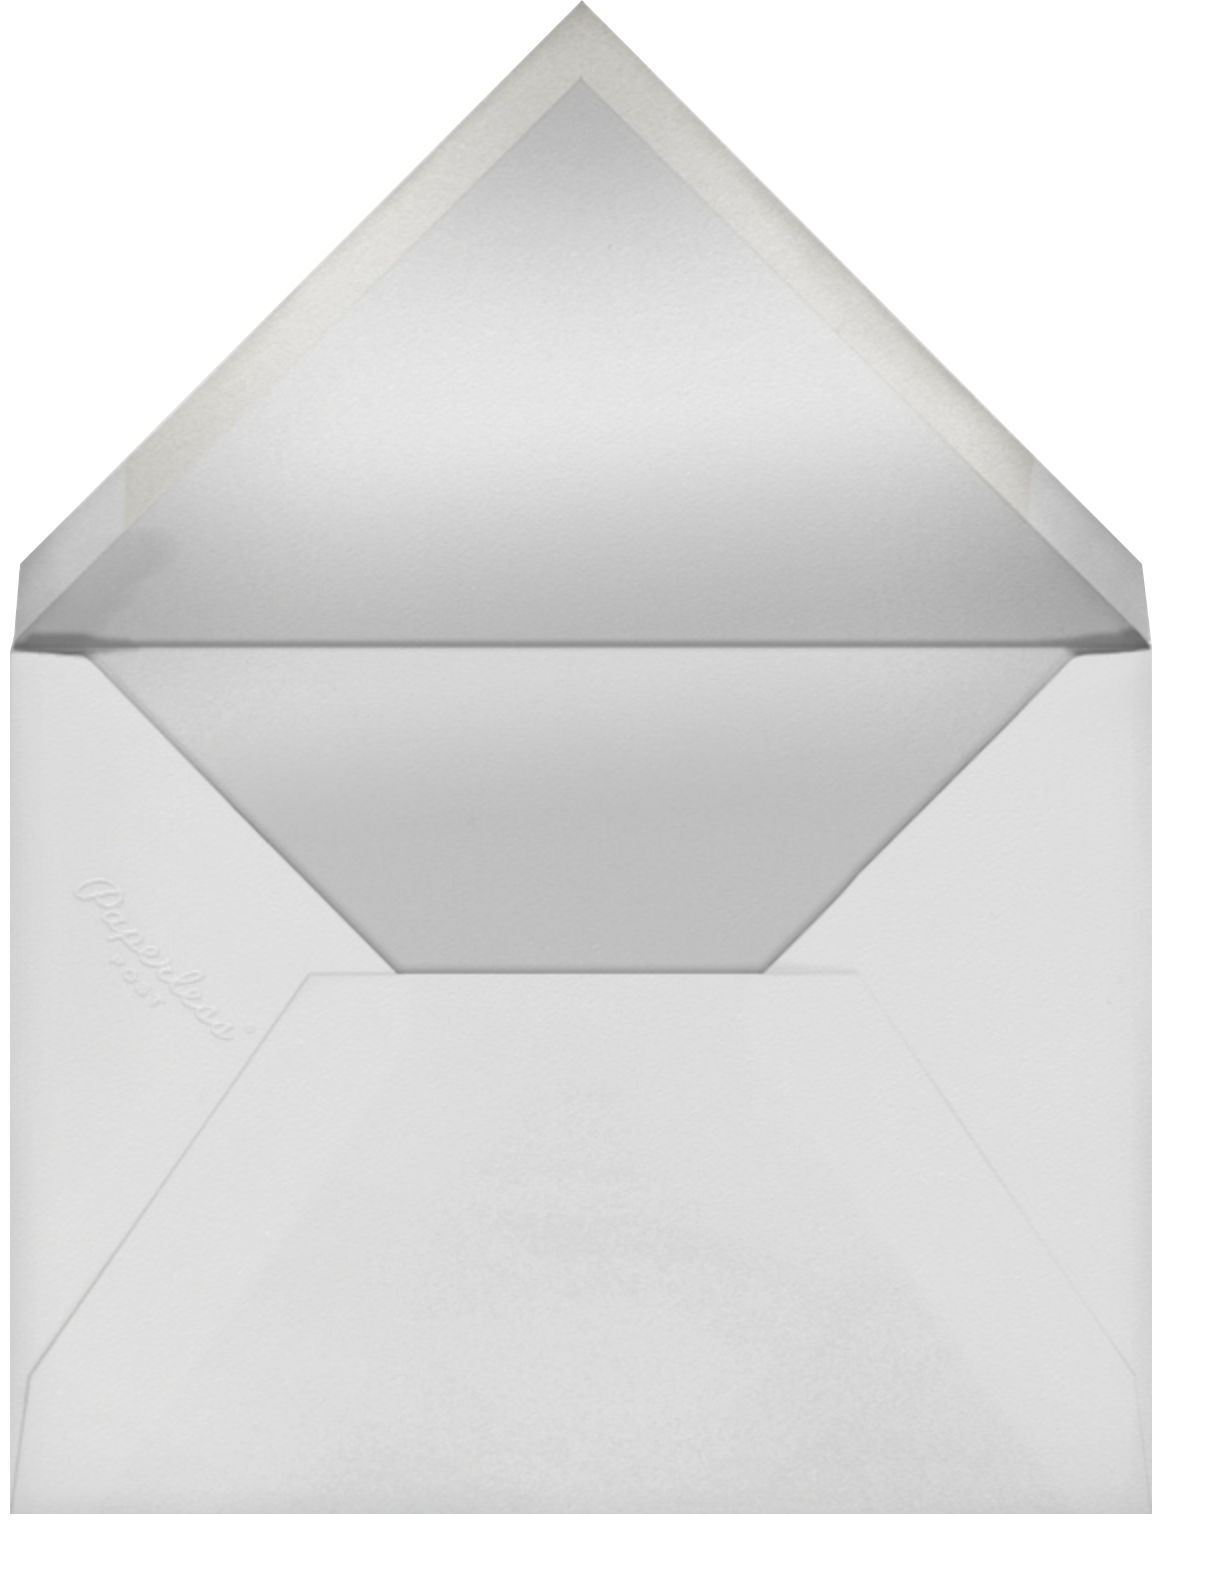 Josephine Baker (Menu) - White/Silver - Paperless Post - Menus - envelope back